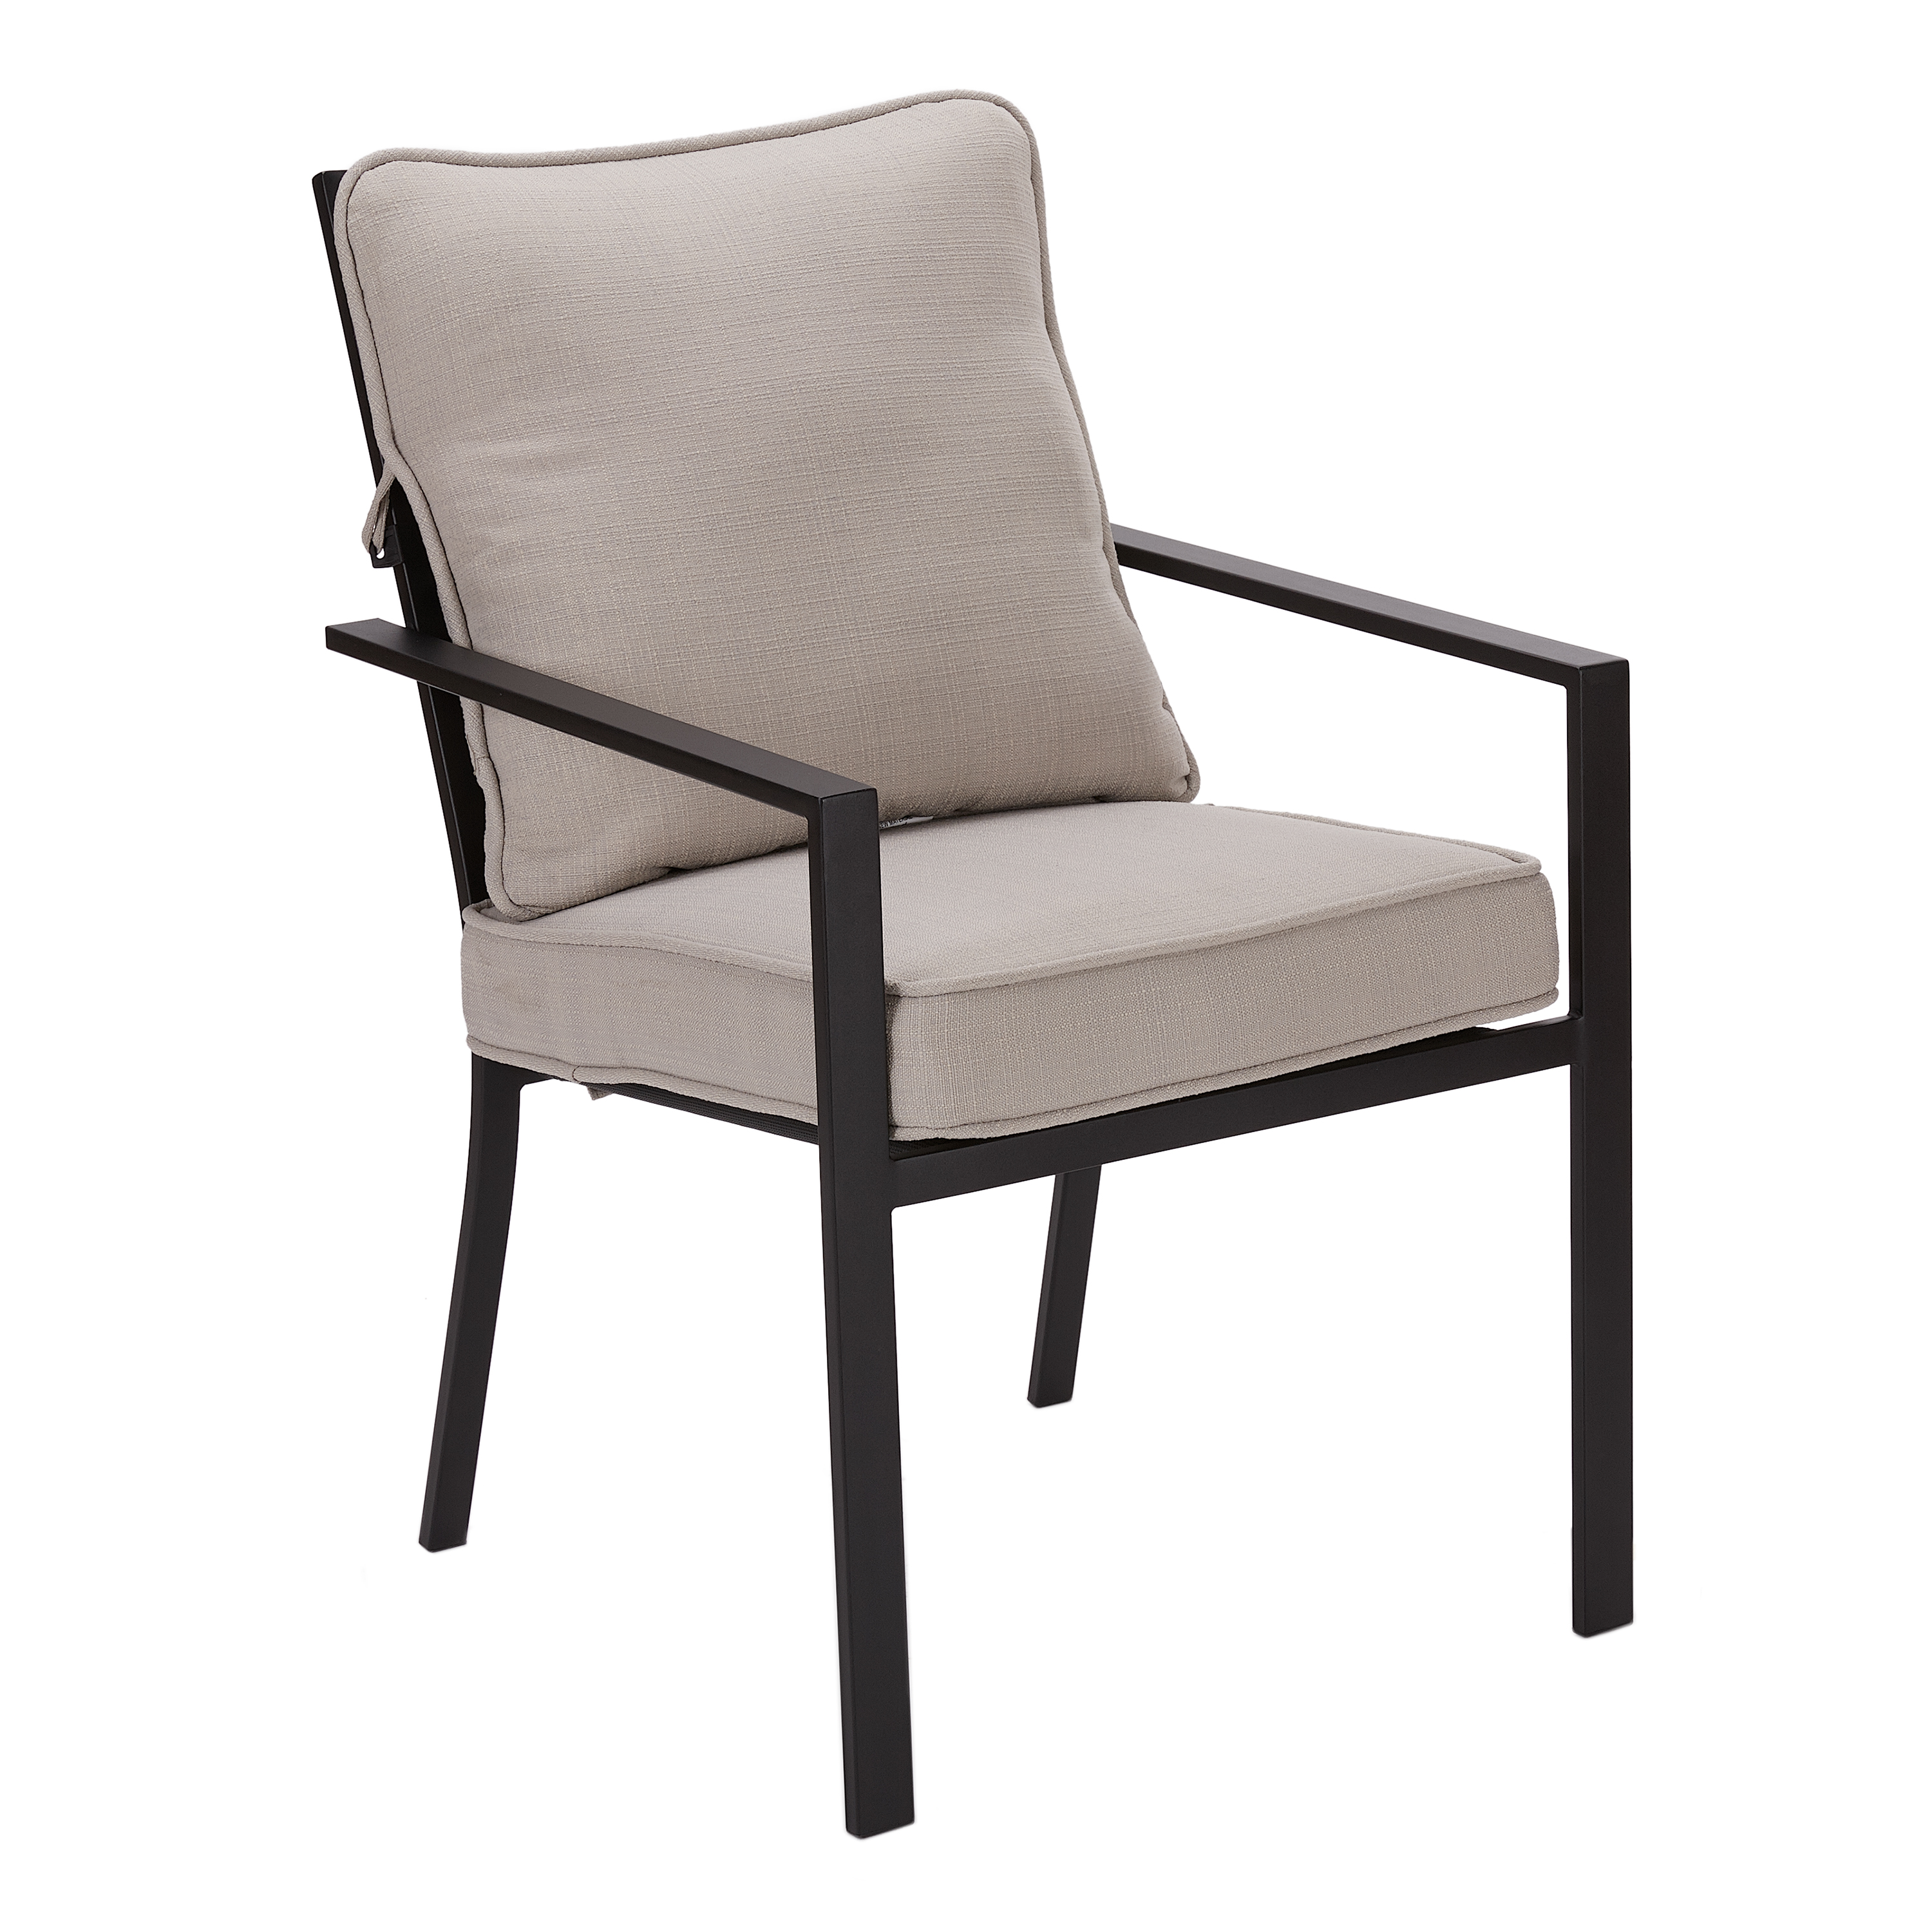 Mainstays Richmond Hills Patio Dining Chairs with Gray Cushions, Set of 4